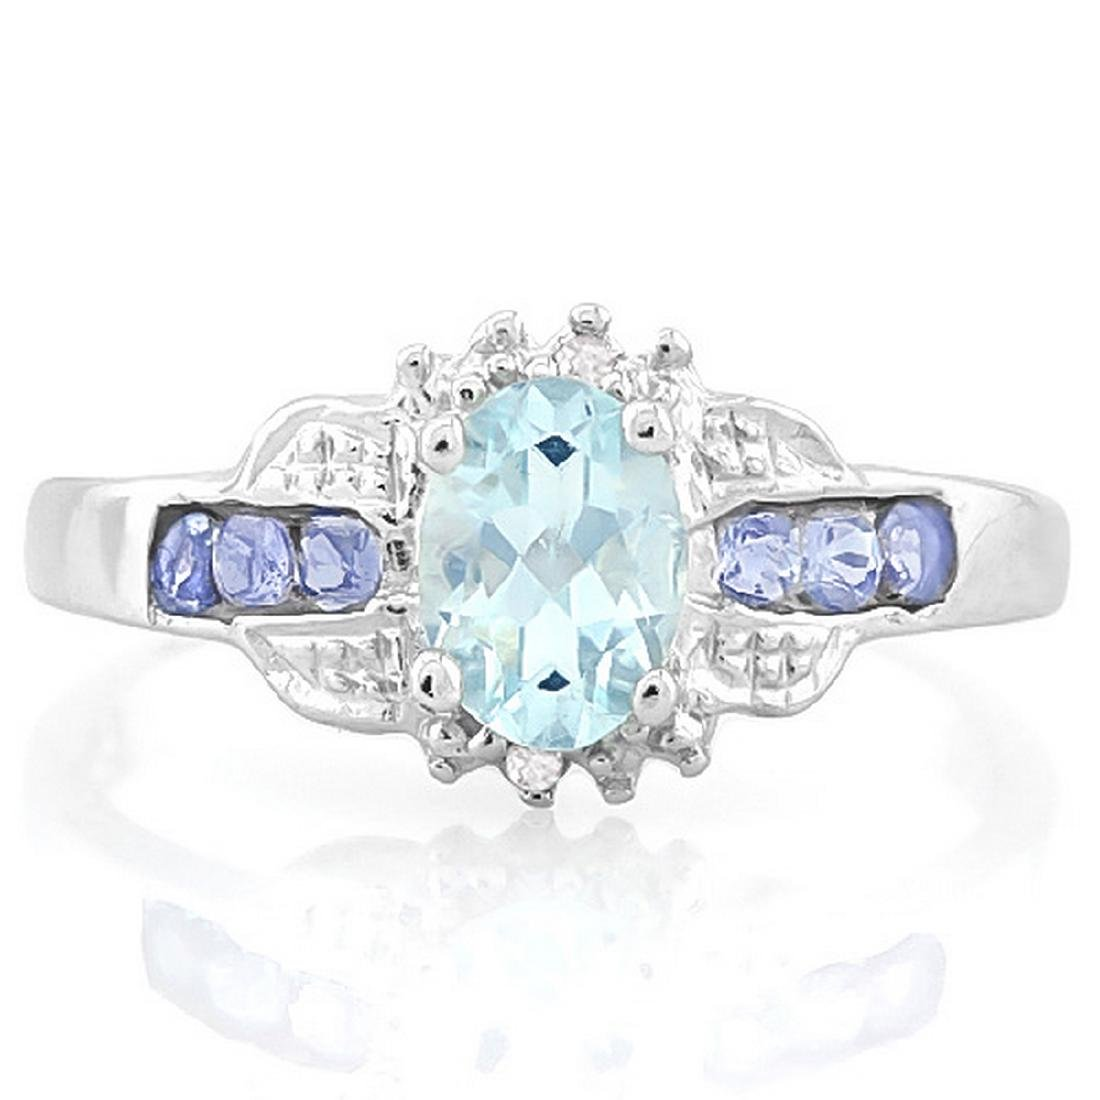 Tanzanite and Aquamarine Deco Style Ring in Platinum - 2